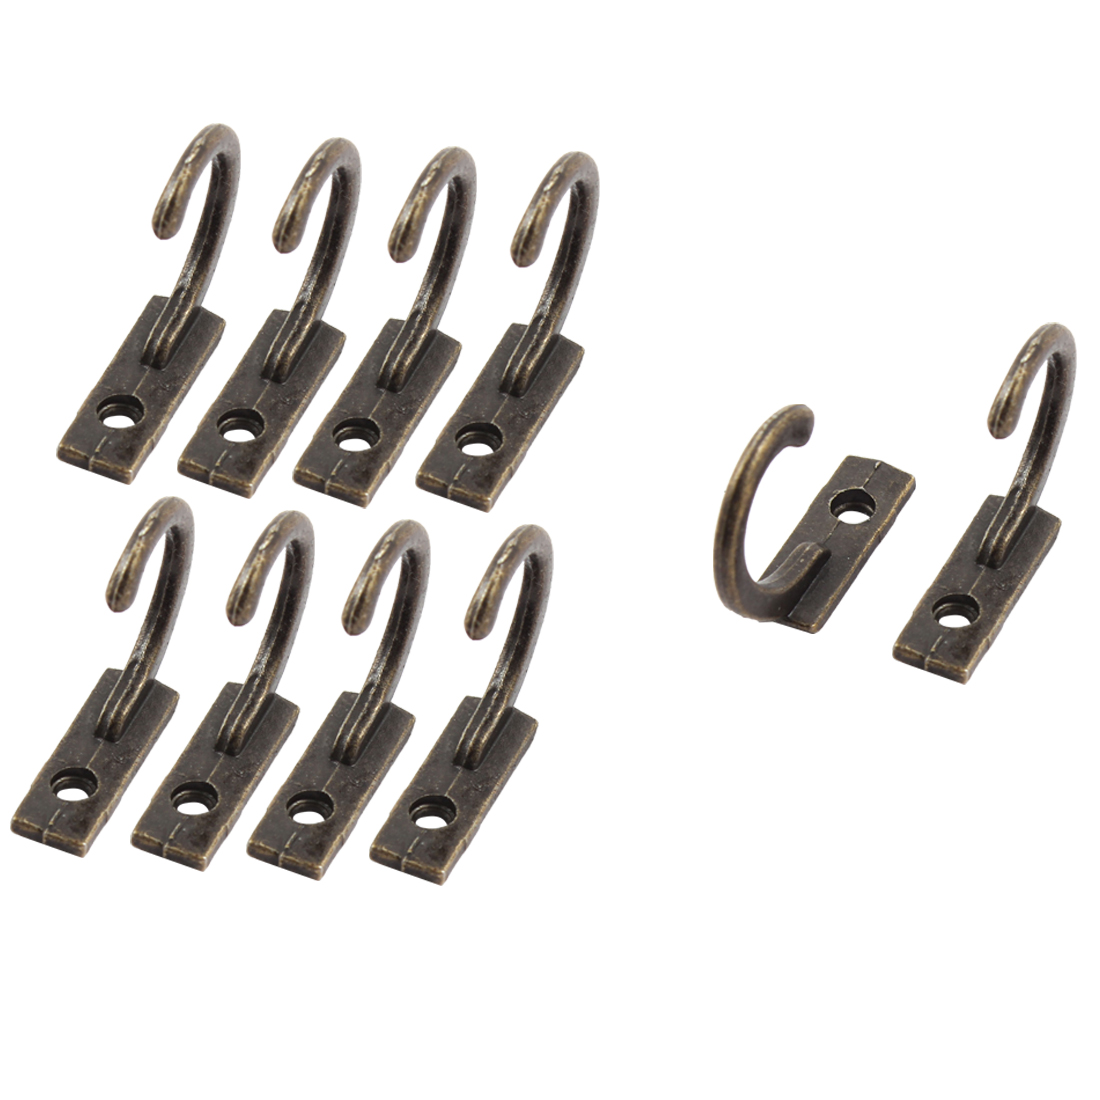 Uxcell Vintage Style Wall Mounted Towel Scarf Bag Cap robe Hook Hangers Bronze Tone 10 PCS